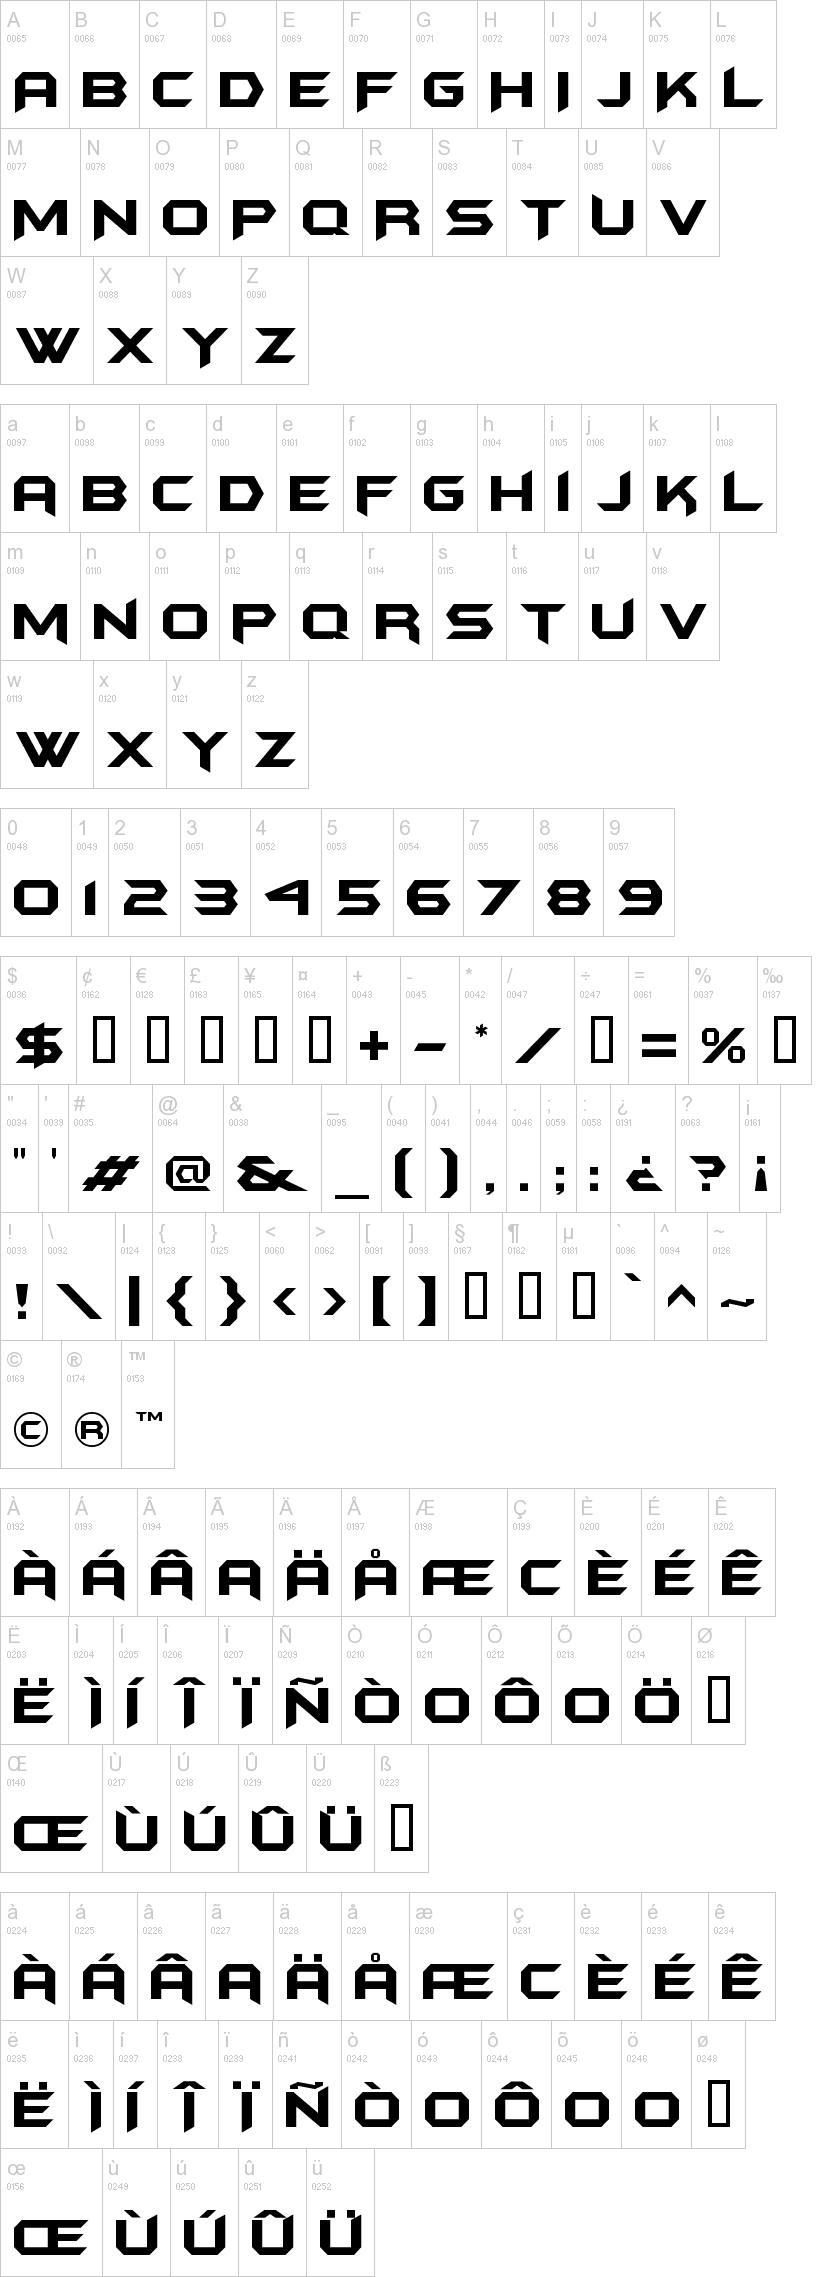 Batman forever font dafont ccuart Gallery